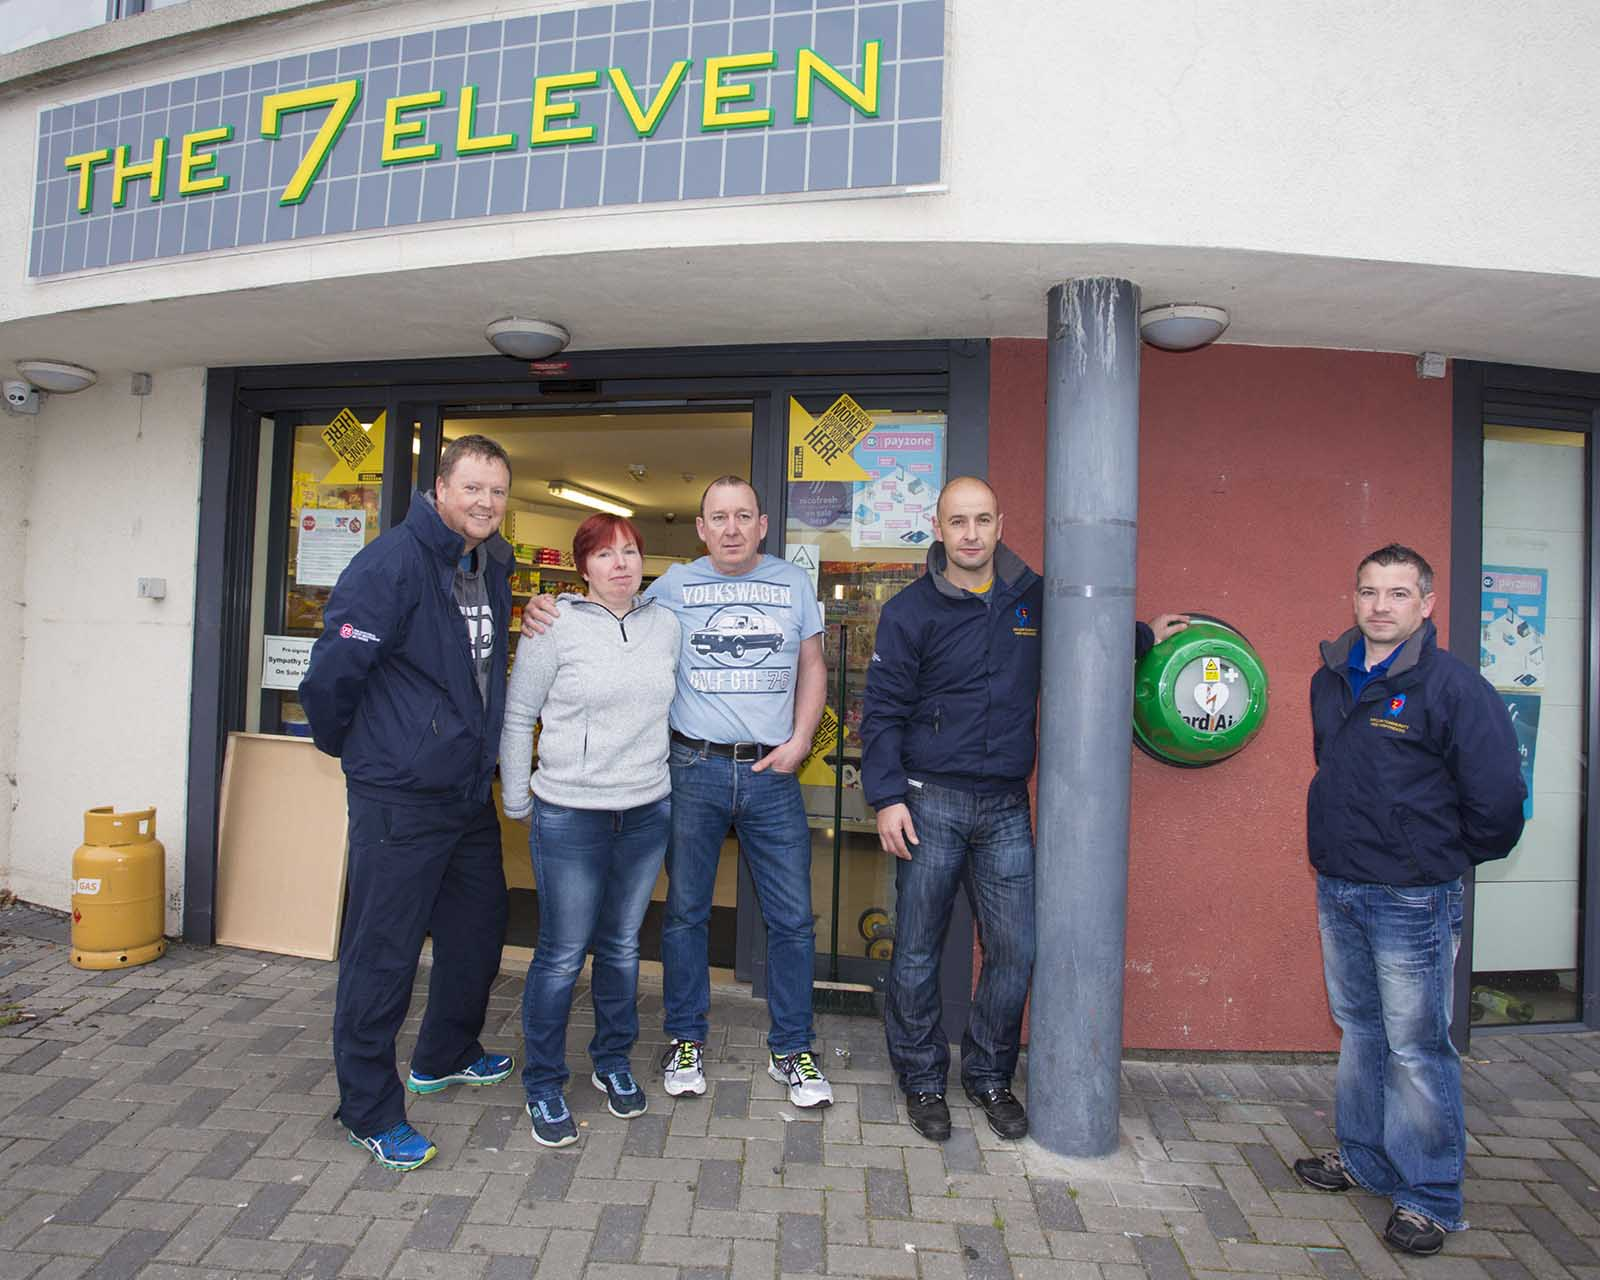 Arklow first responders David Nugent, John Summers and Brian Higgins with Geraldine O'Reilly and Billy Nolan with the new defibrillator which is located 7 eleven, Abbey Street Arklow (Pic.Michael Kelly)